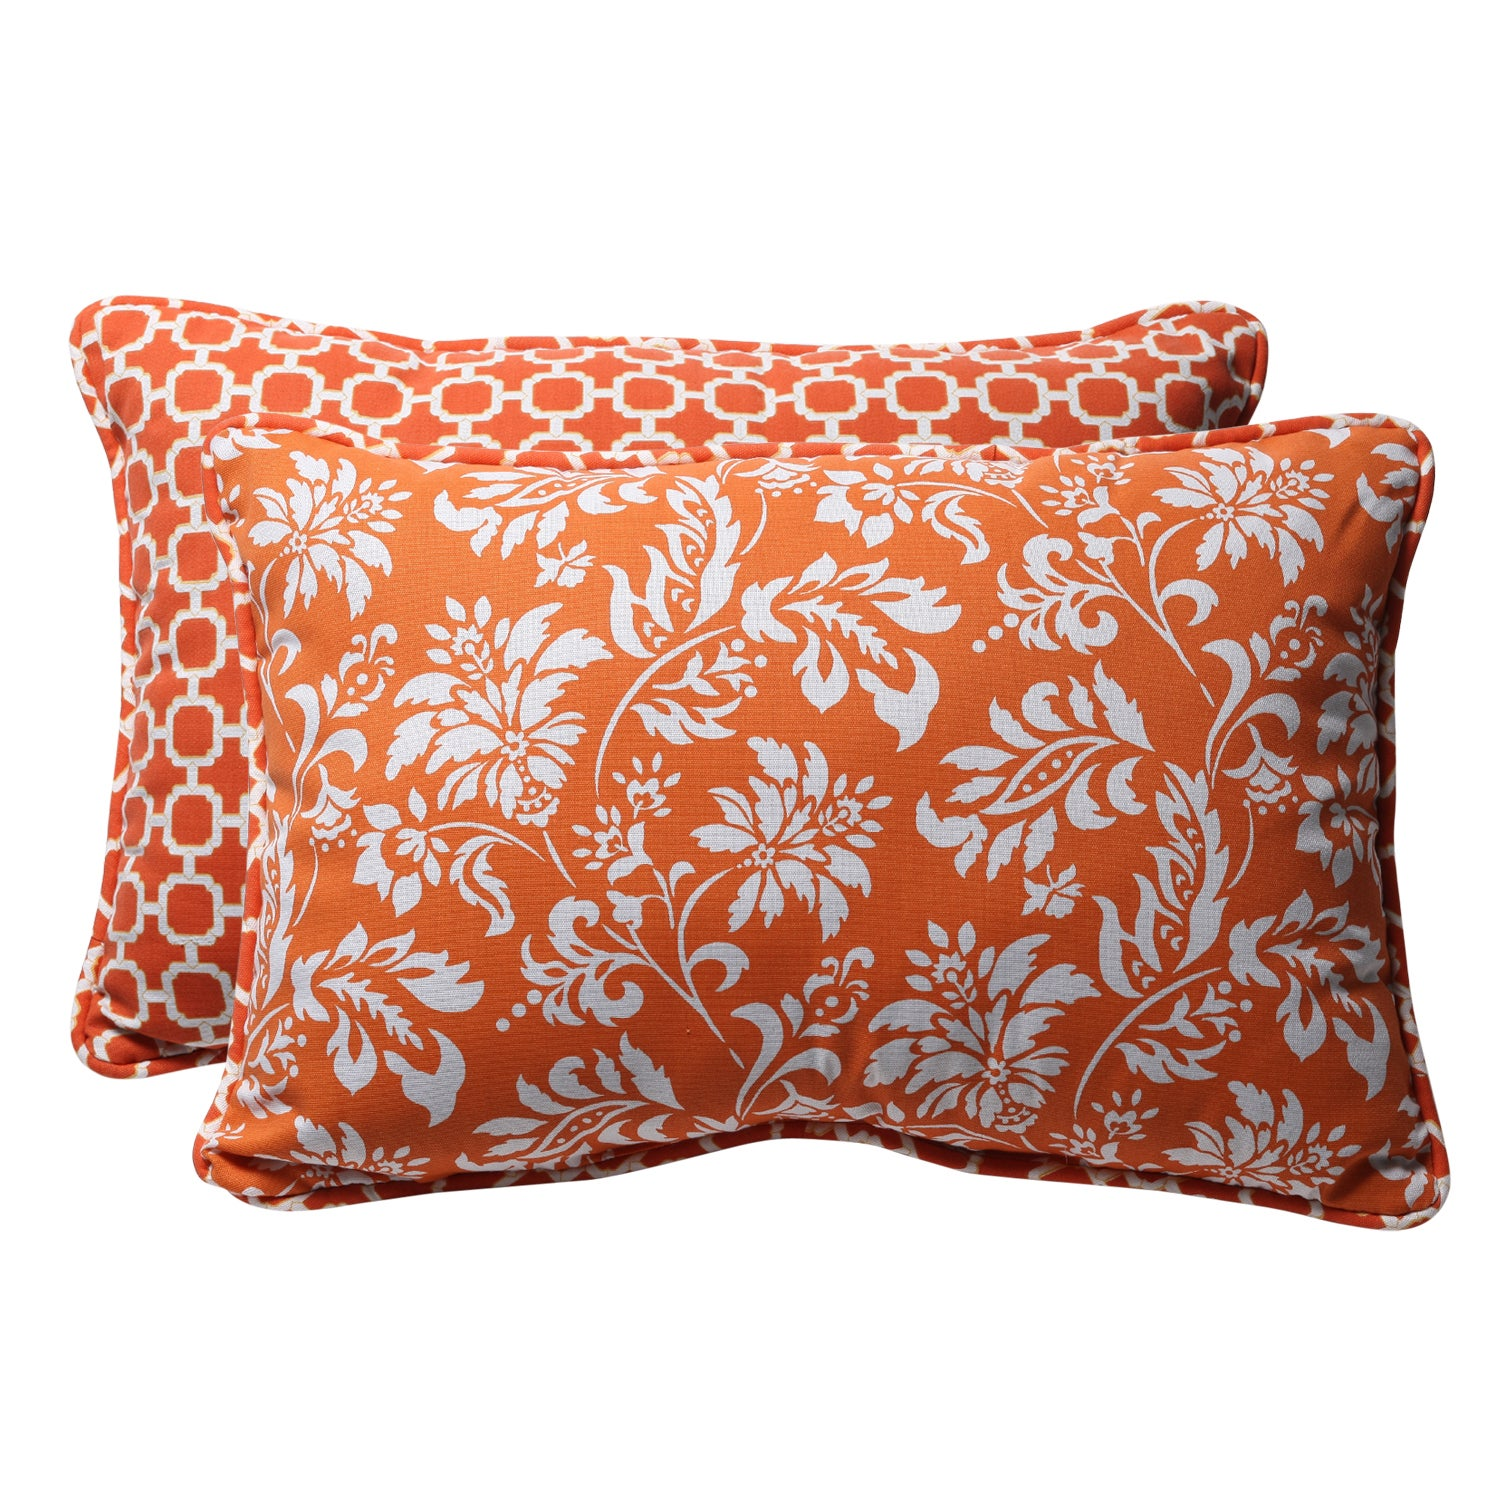 Decorative Orange and White Geometric and Floral Reversible Rectangle Outdoor Toss Pillows (Set of 2)